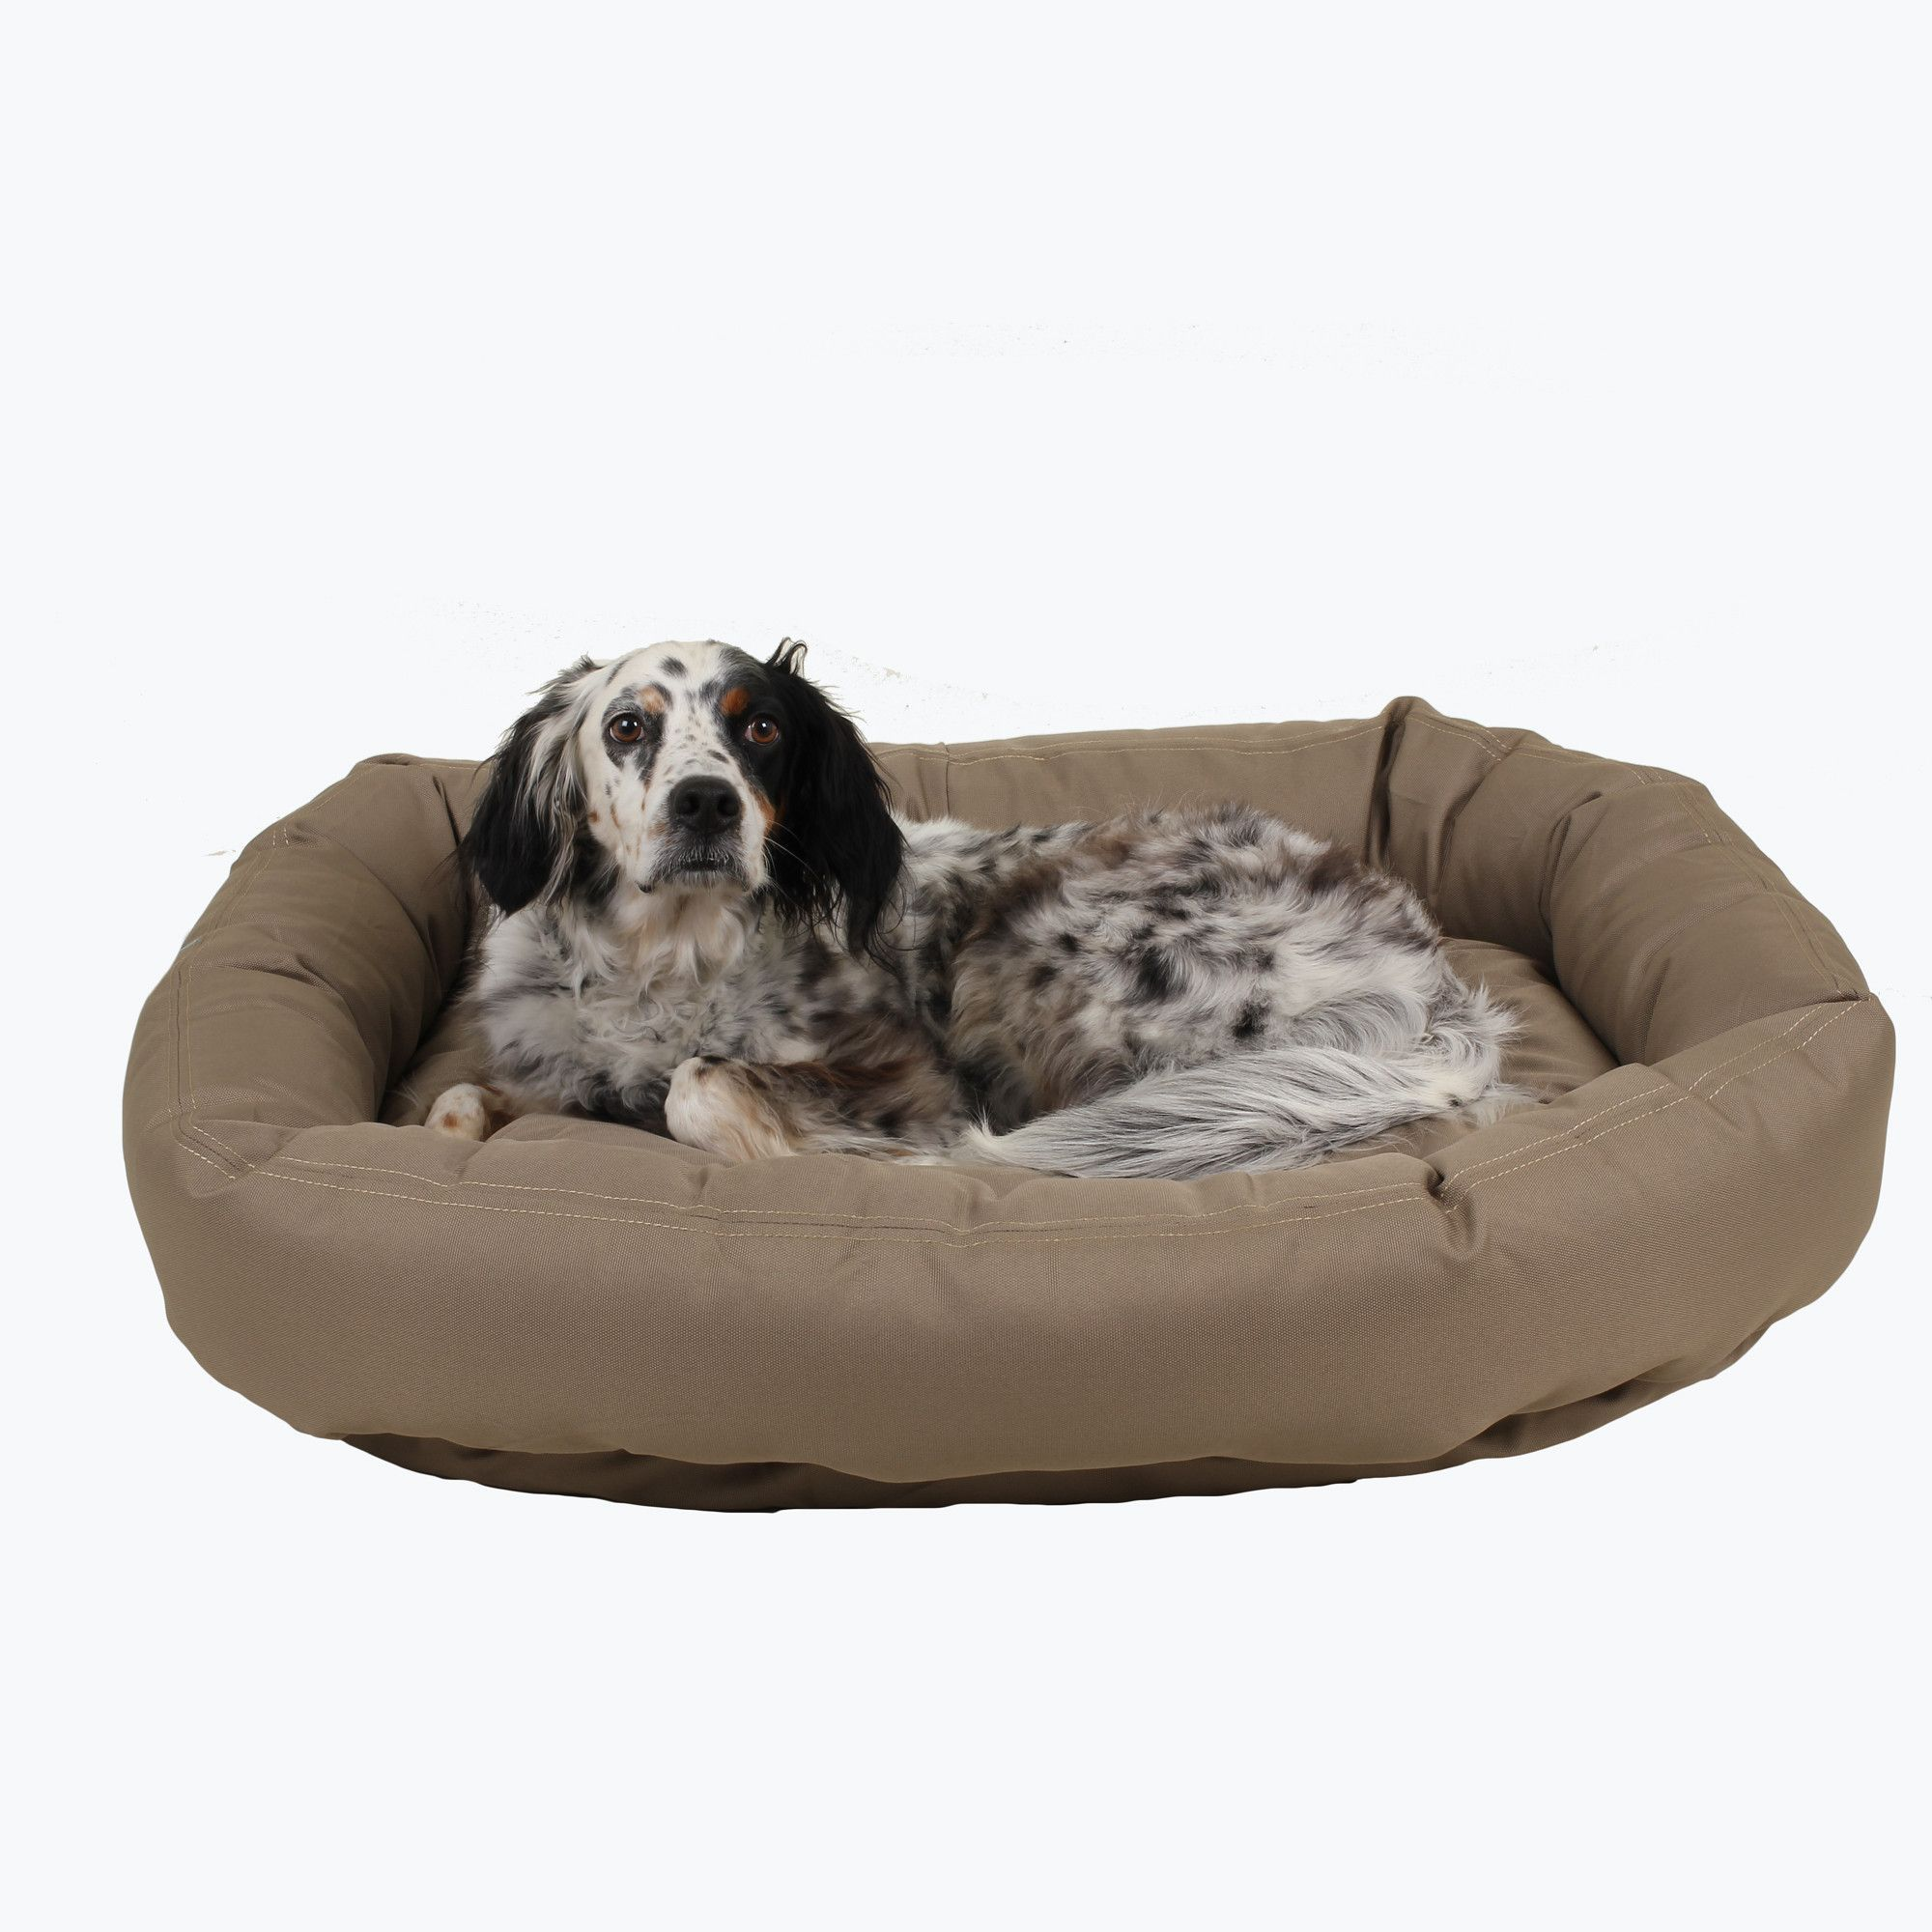 Brutus Tuff ChewResistant Donut Dog Bed in 2019 Dog bed